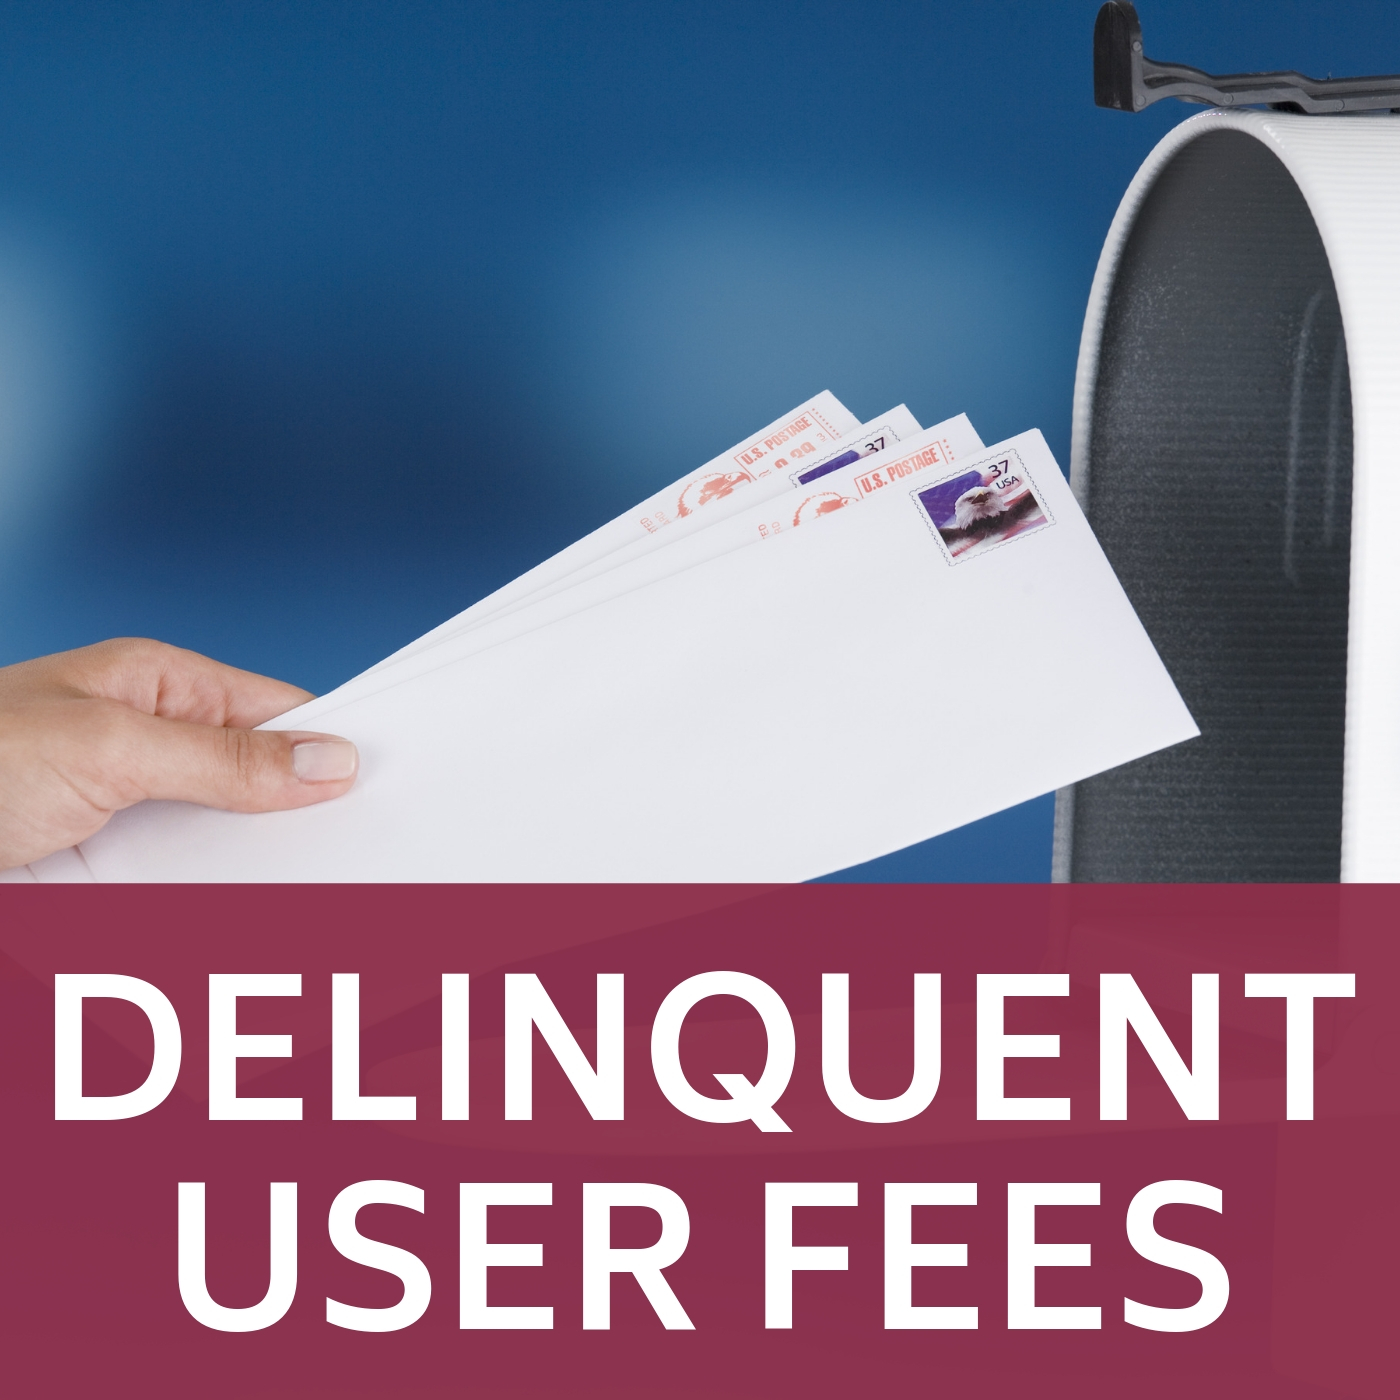 Image of mail and mailbox that links to information about deliquent user fees.